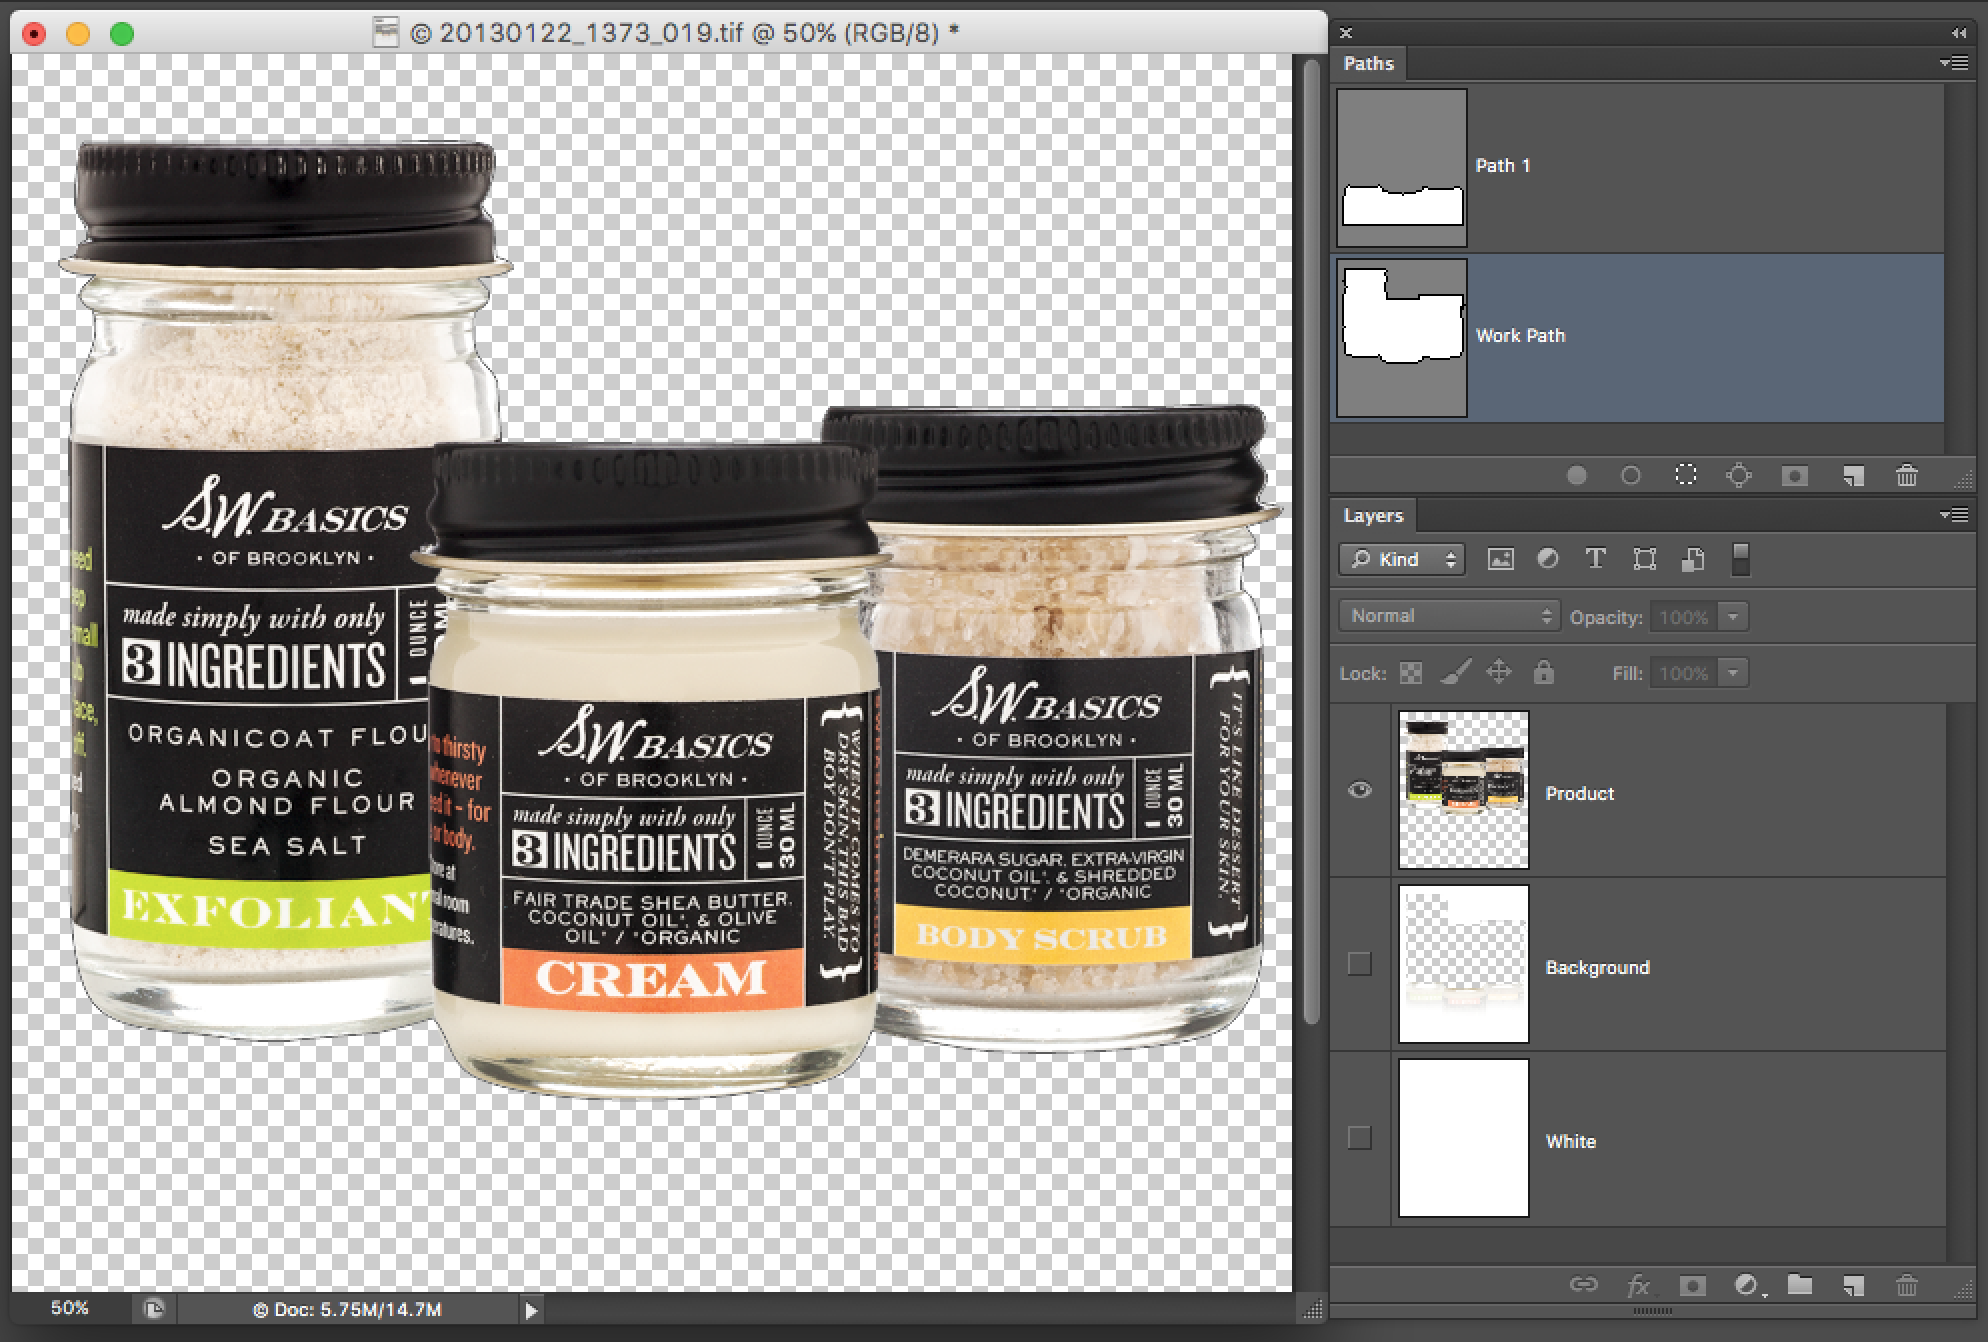 This is how the layered tif appears in Photoshop